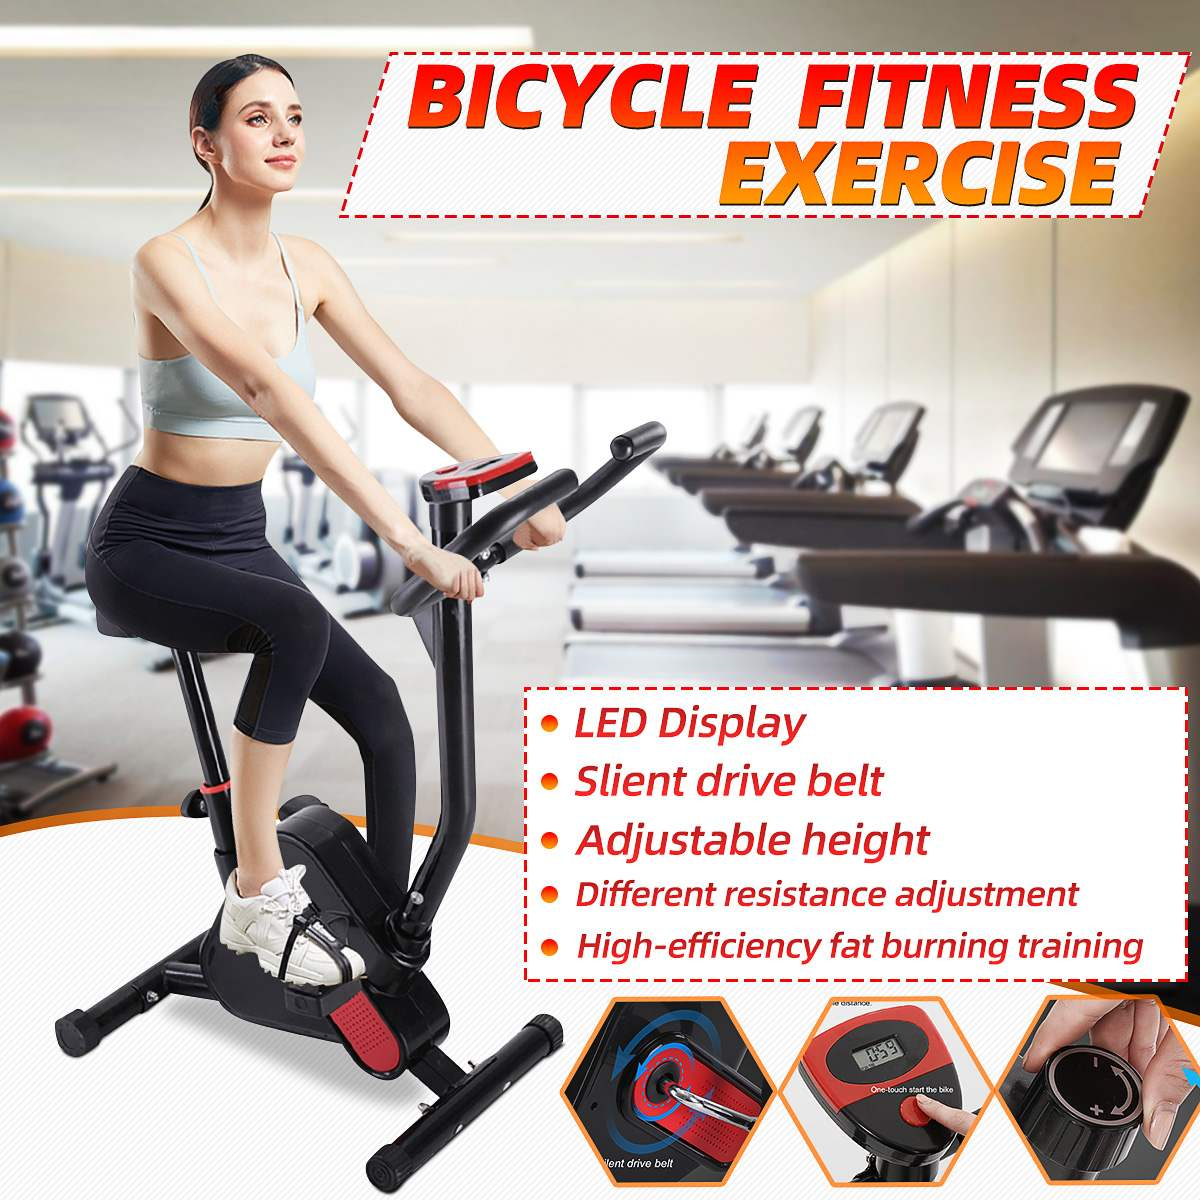 Home Indoor Cycling Bike Trainer LED Display Bicycle Fitness Exercise Cardio Tools Stationary Fitness Equipment Body Building